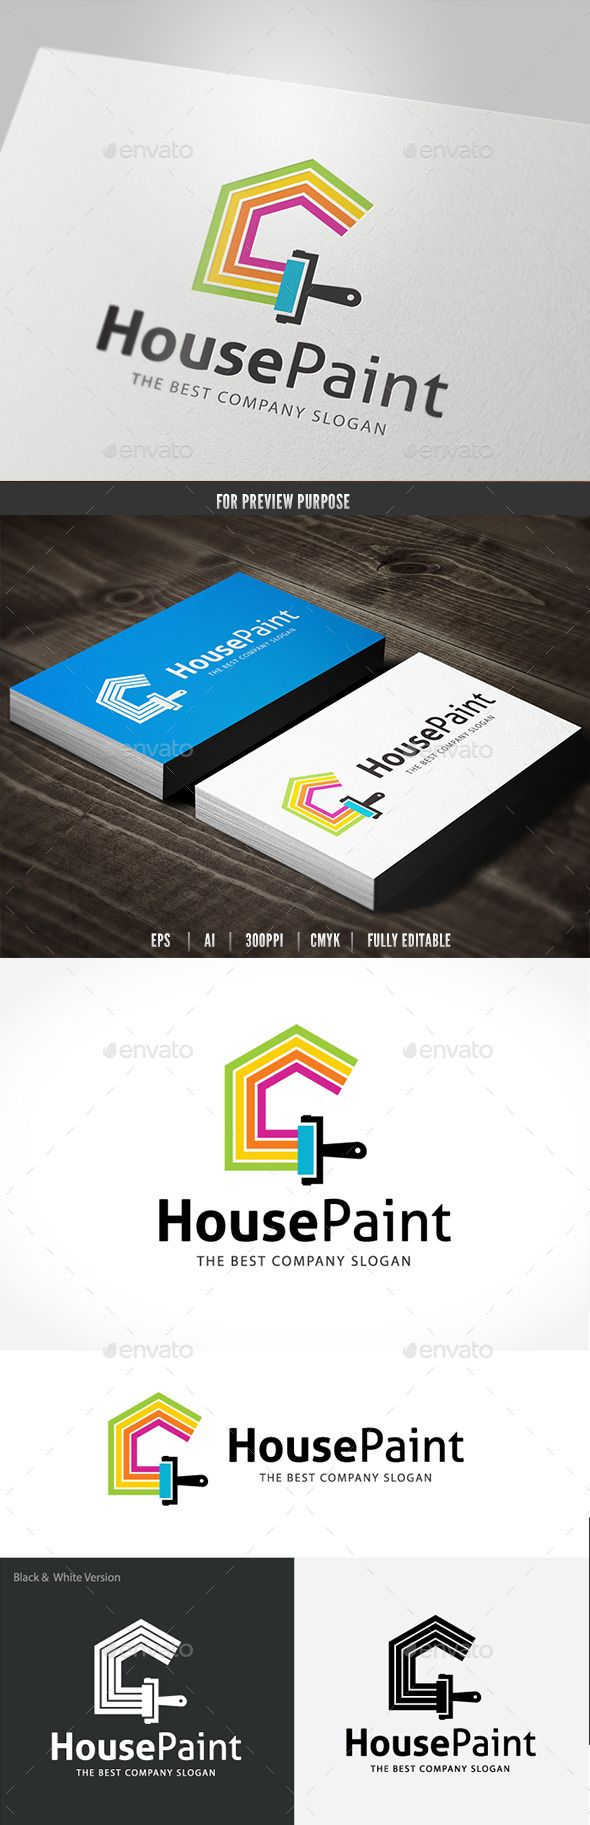 House Paint Logo Design Template Vector #logotype Download it here:  http://graphicriver.net/item/house-paint/10810543?s_rank=754?ref=nexion